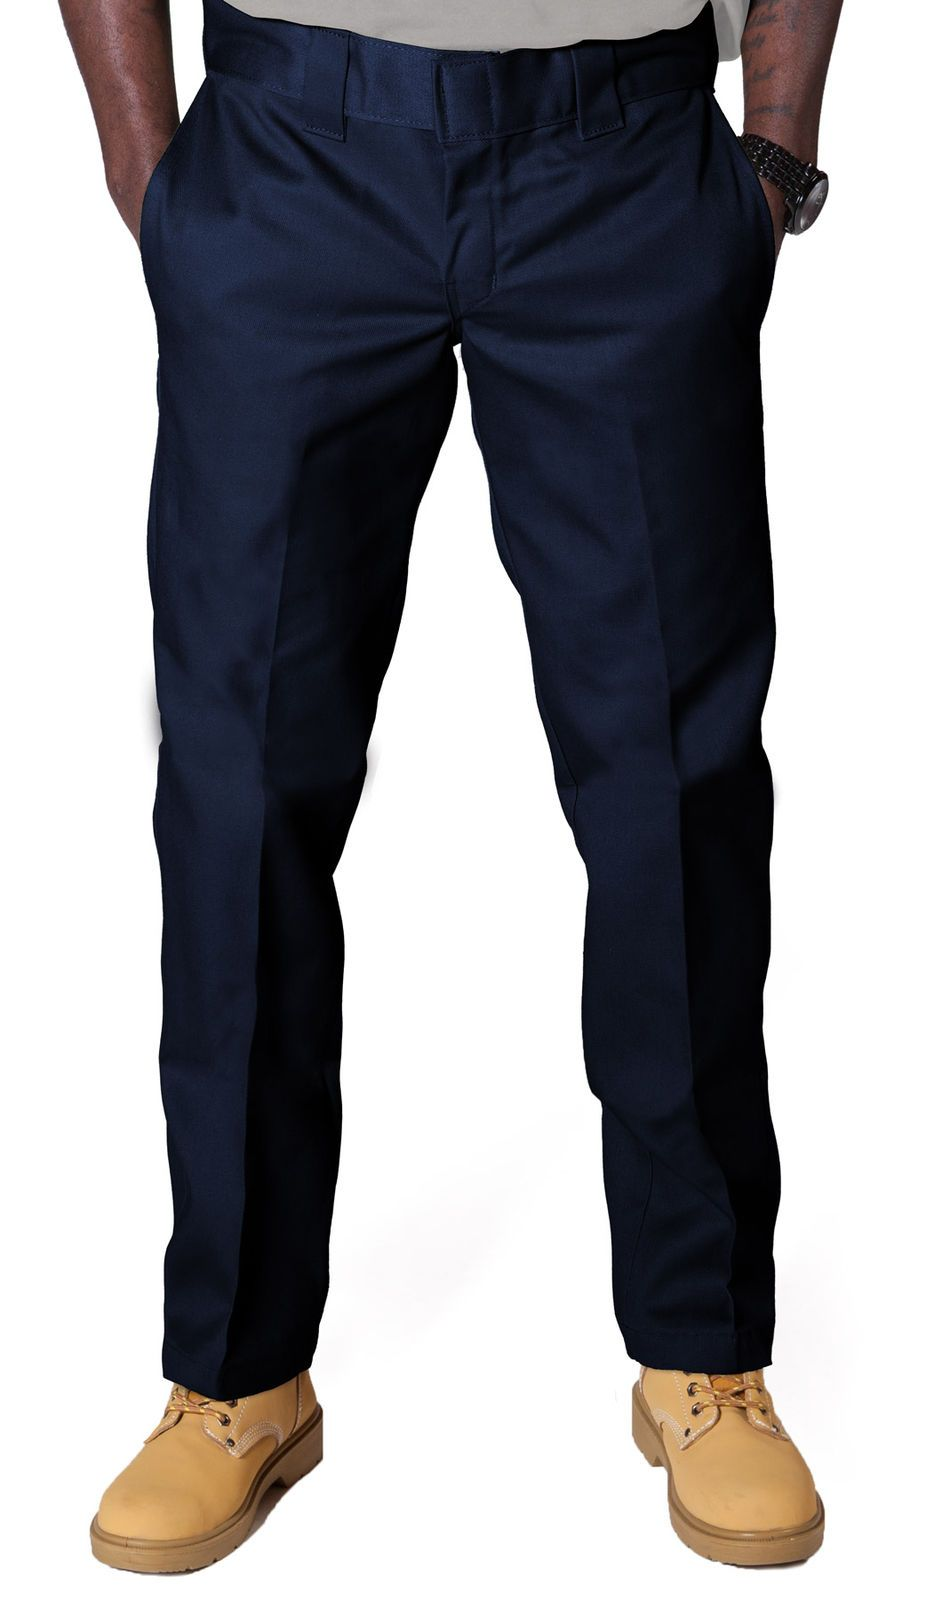 Closer front view of Dickies slim fit 873 work pant in navy-blue with hands in front pockets, showing permanent crease, twill fabric and tunnel belt loops.